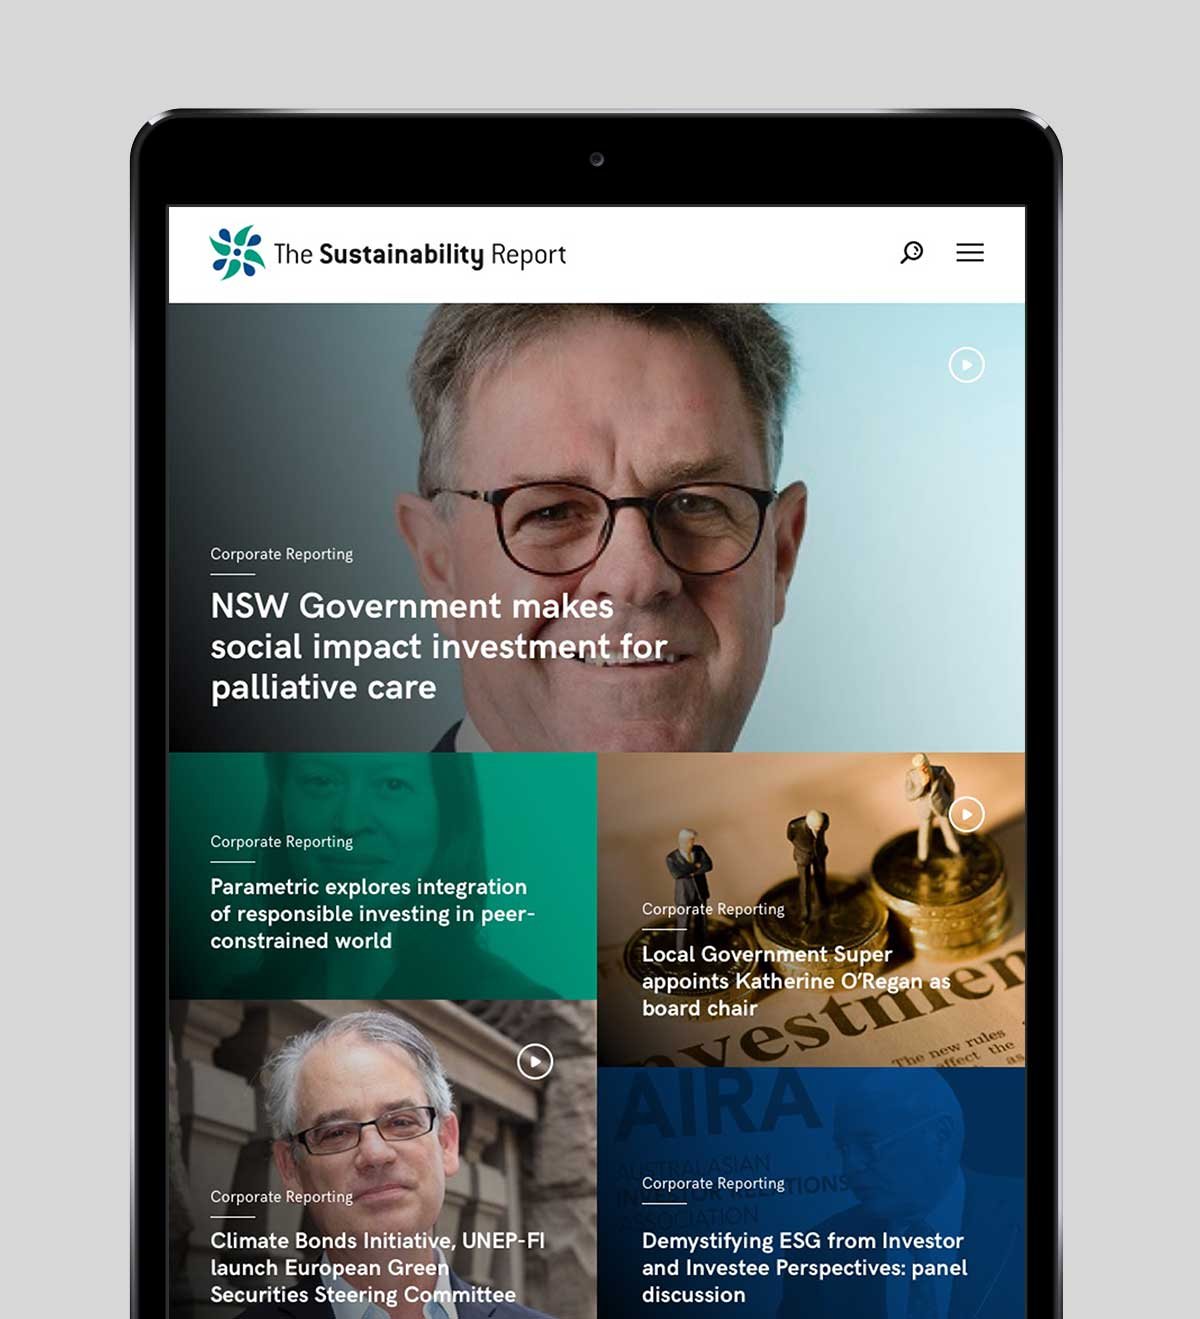 The Sustainability Report responsive website design on iPad in portrait view